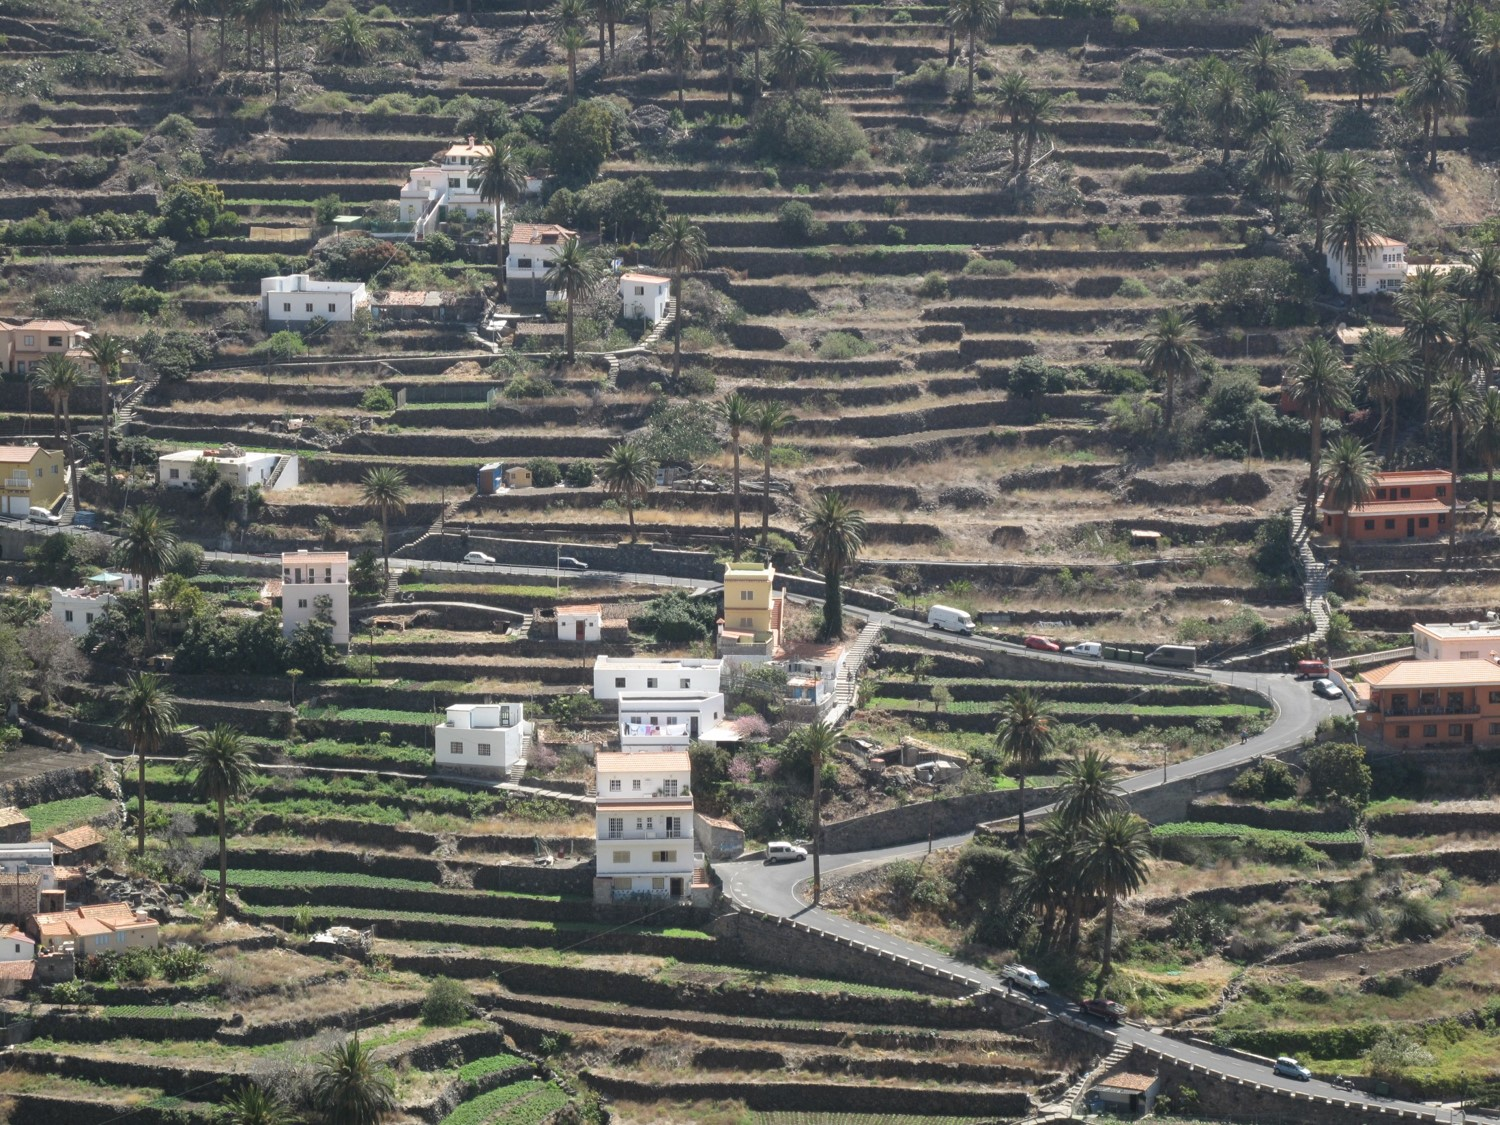 Agricultural terraces Canary Islands